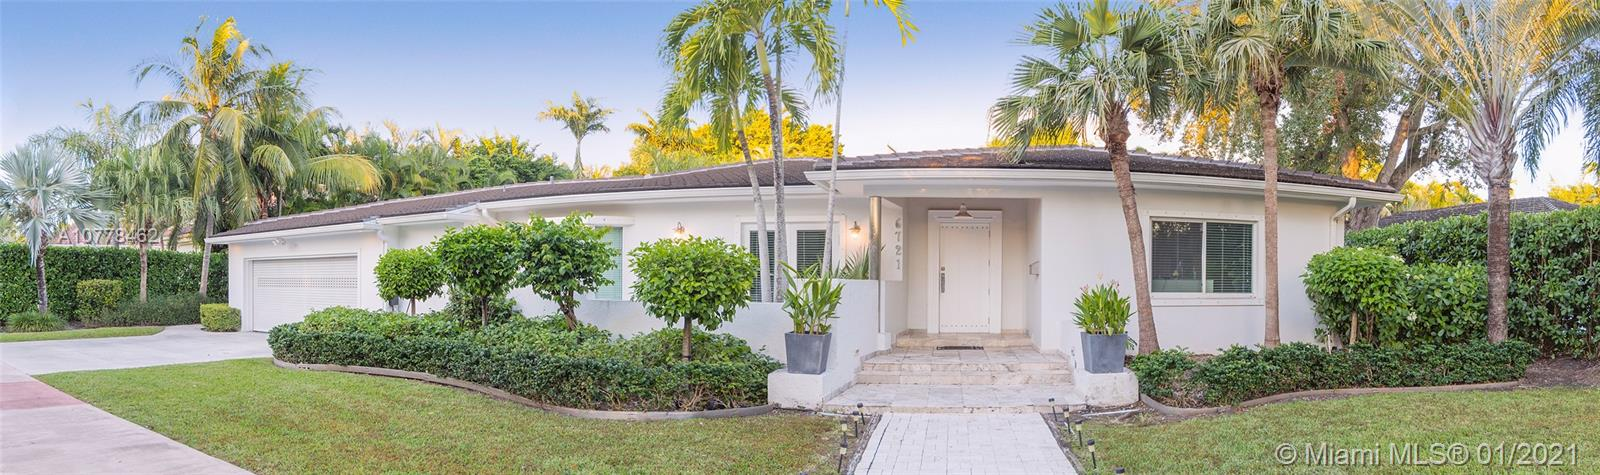 6721  Riviera Dr  For Sale A10778462, FL